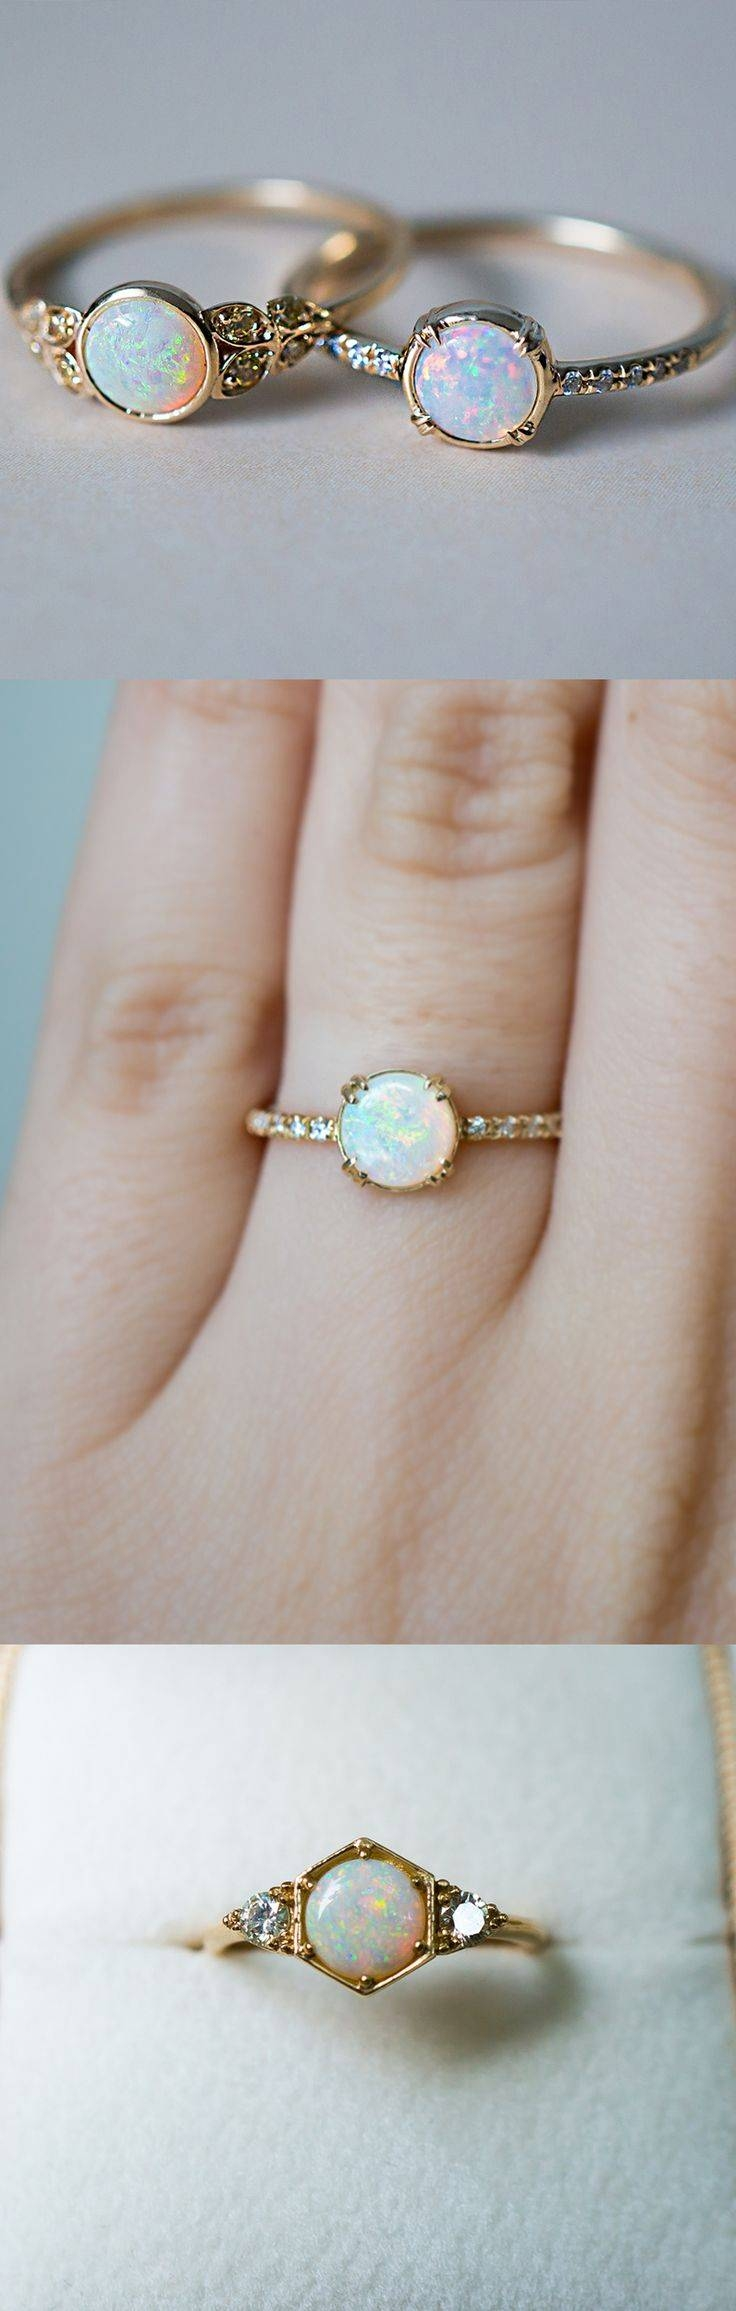 Best 25+ Opal Engagement Rings Ideas On Pinterest | Pretty Rings Throughout Opal Wedding Rings (Gallery 13 of 15)